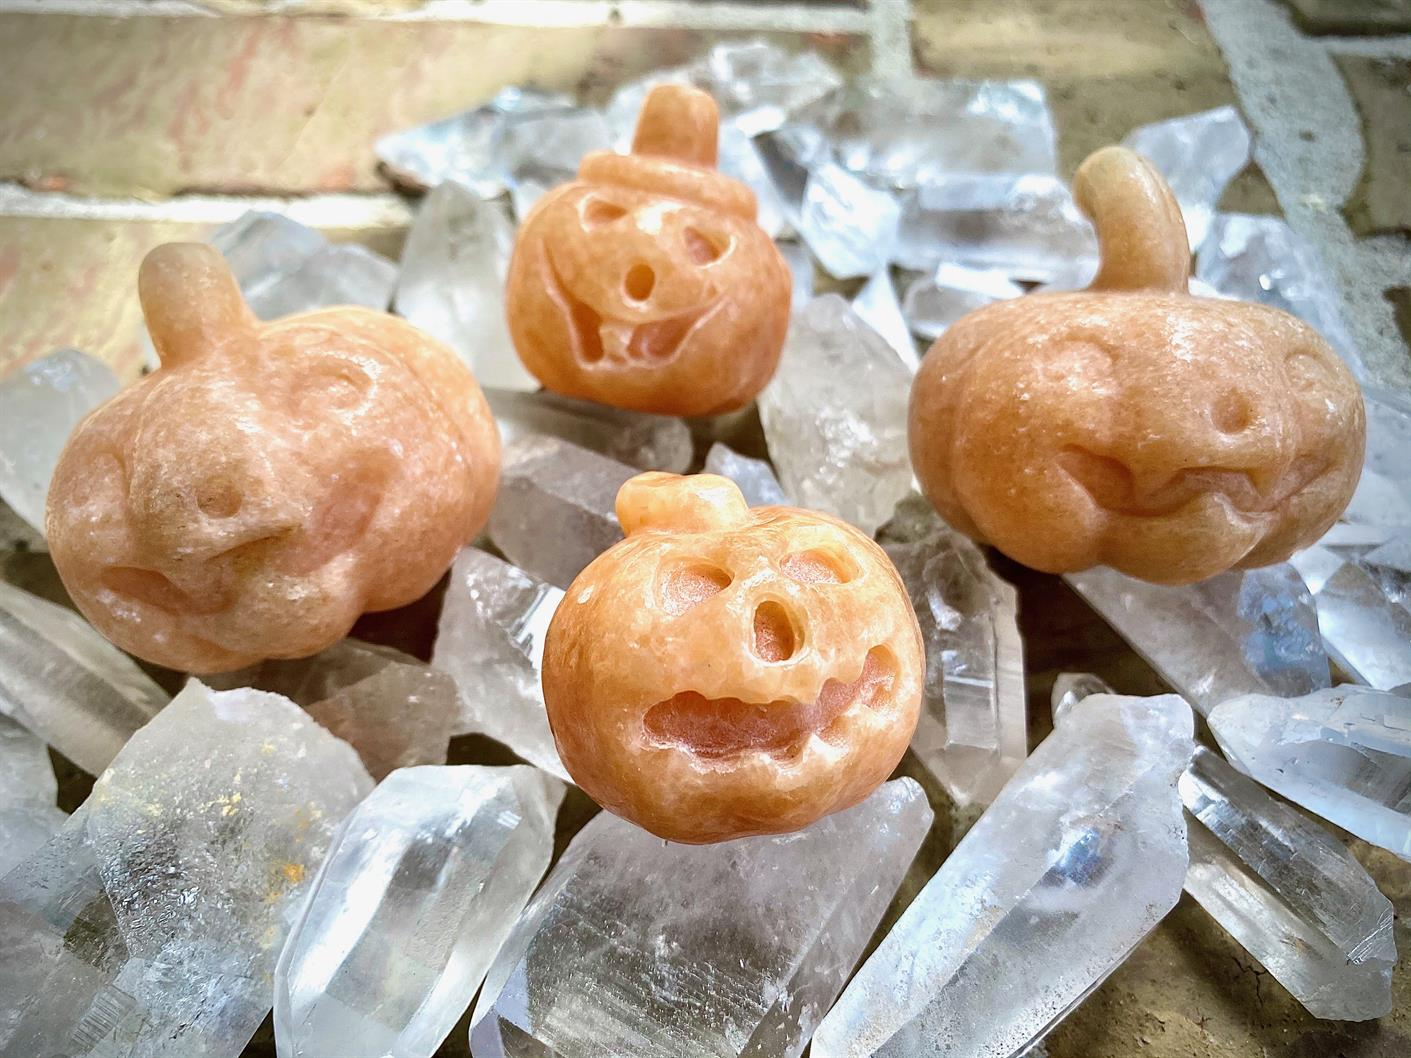 Jack O' Lantern Sunstone or Yellow Aventurine Carved Pumpkin FB2703